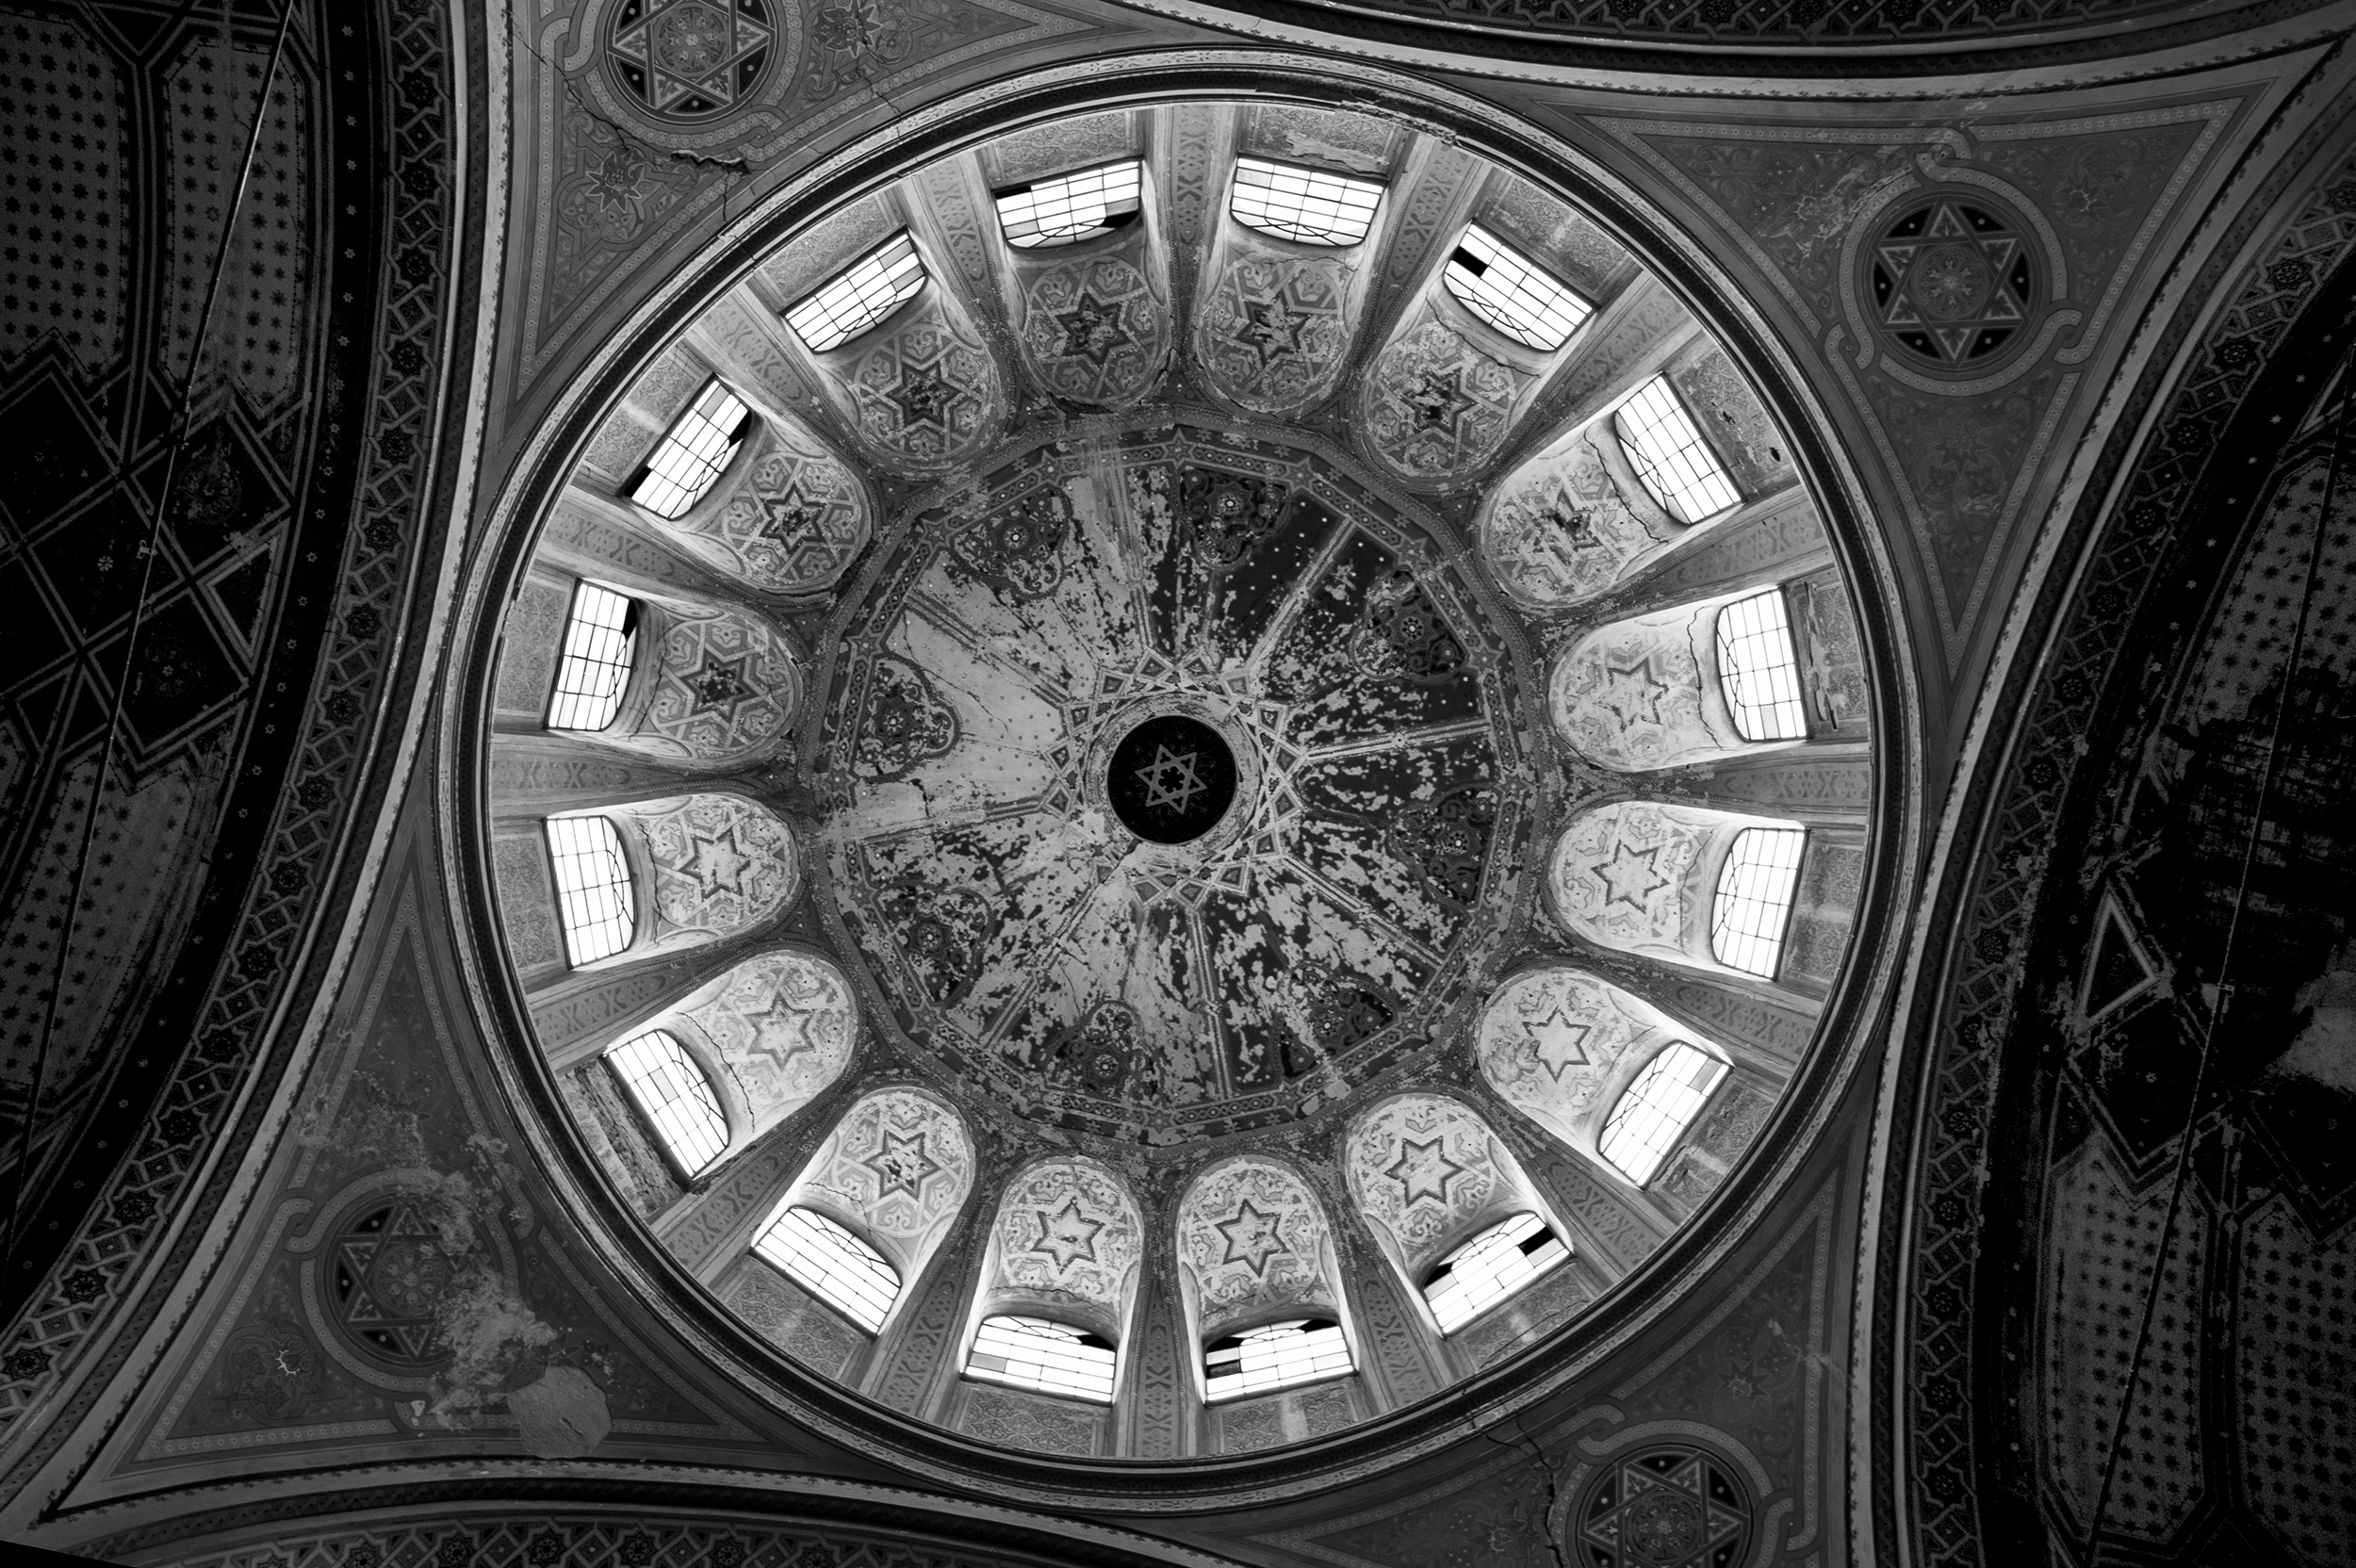 The crumbling dome of the Zion Neologic Synagogue towers above the sanctuary floor below on April 10, 2013. The thousand-seat Zion Neologic Synagogue was one of the largest in all of Europe before the Second World War, but sat empty for decades during communist rule in Romania.